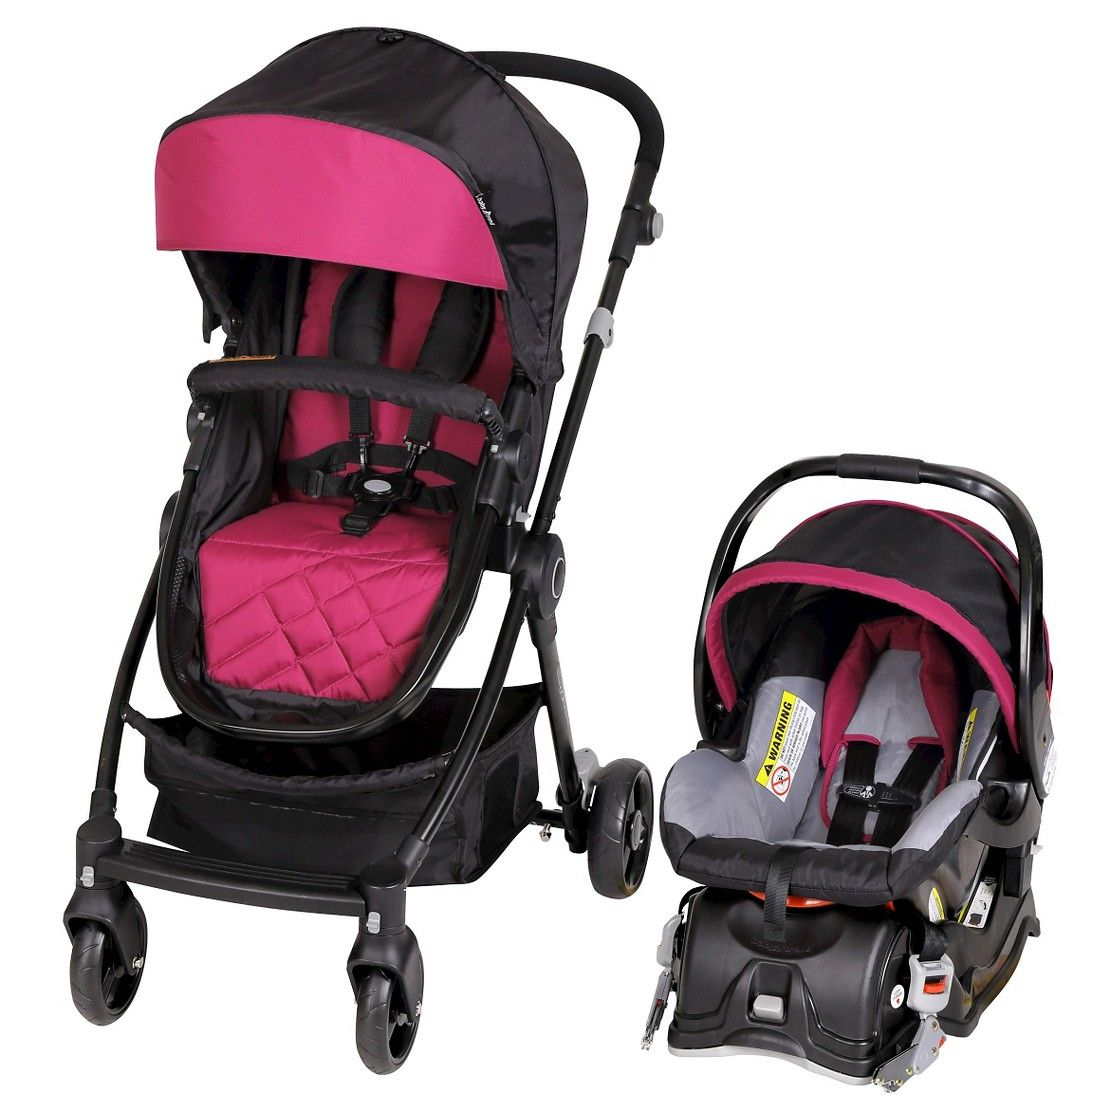 Baby Trend City Clicker LX Travel System Travel systems